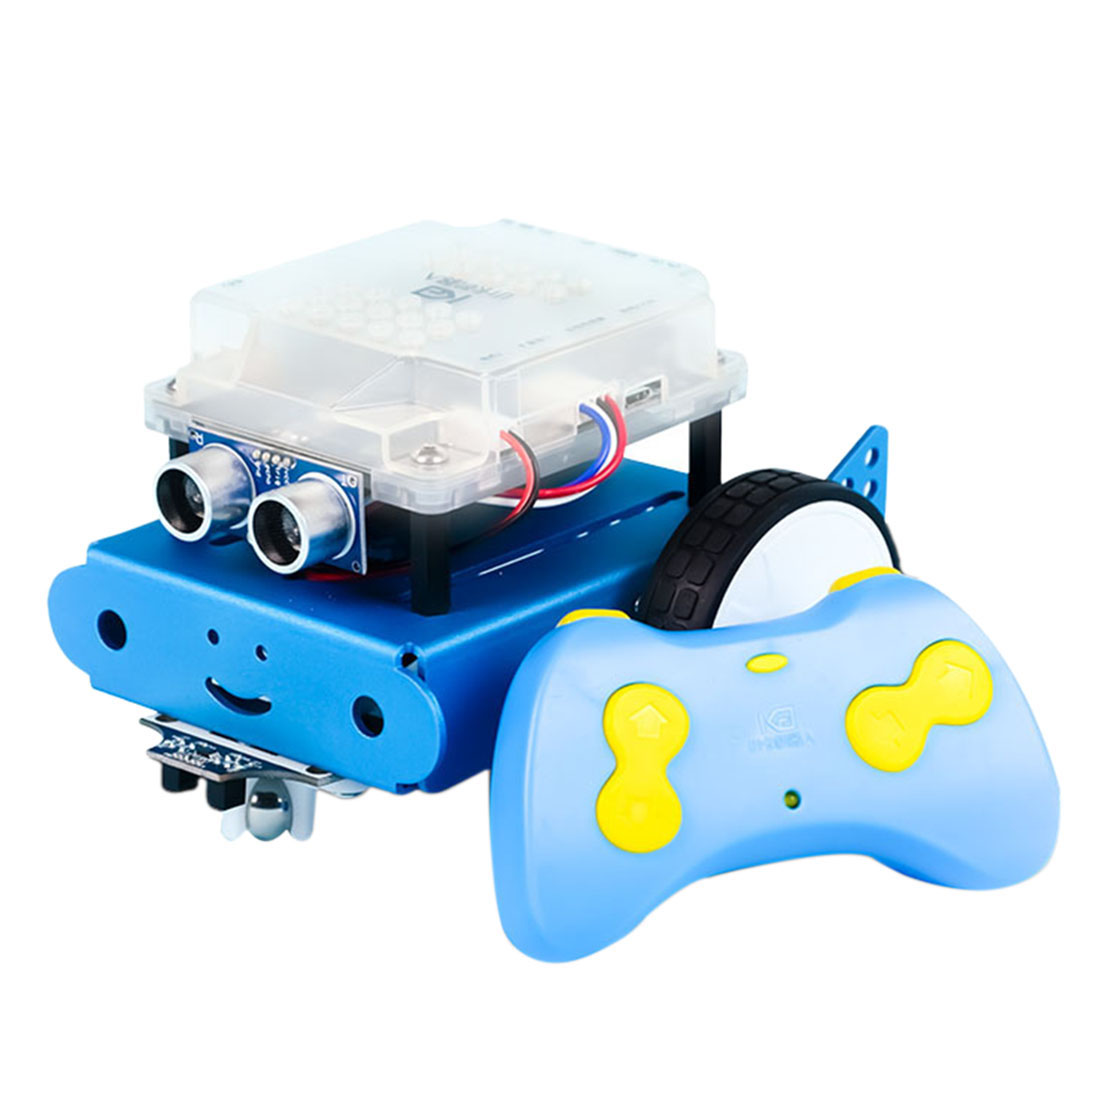 MODIKER DIY High Tech Smart Robot Car Kit APP Control Obstacle Avoidance Line-tracking Ultrasonic Sensor Programmable Toys